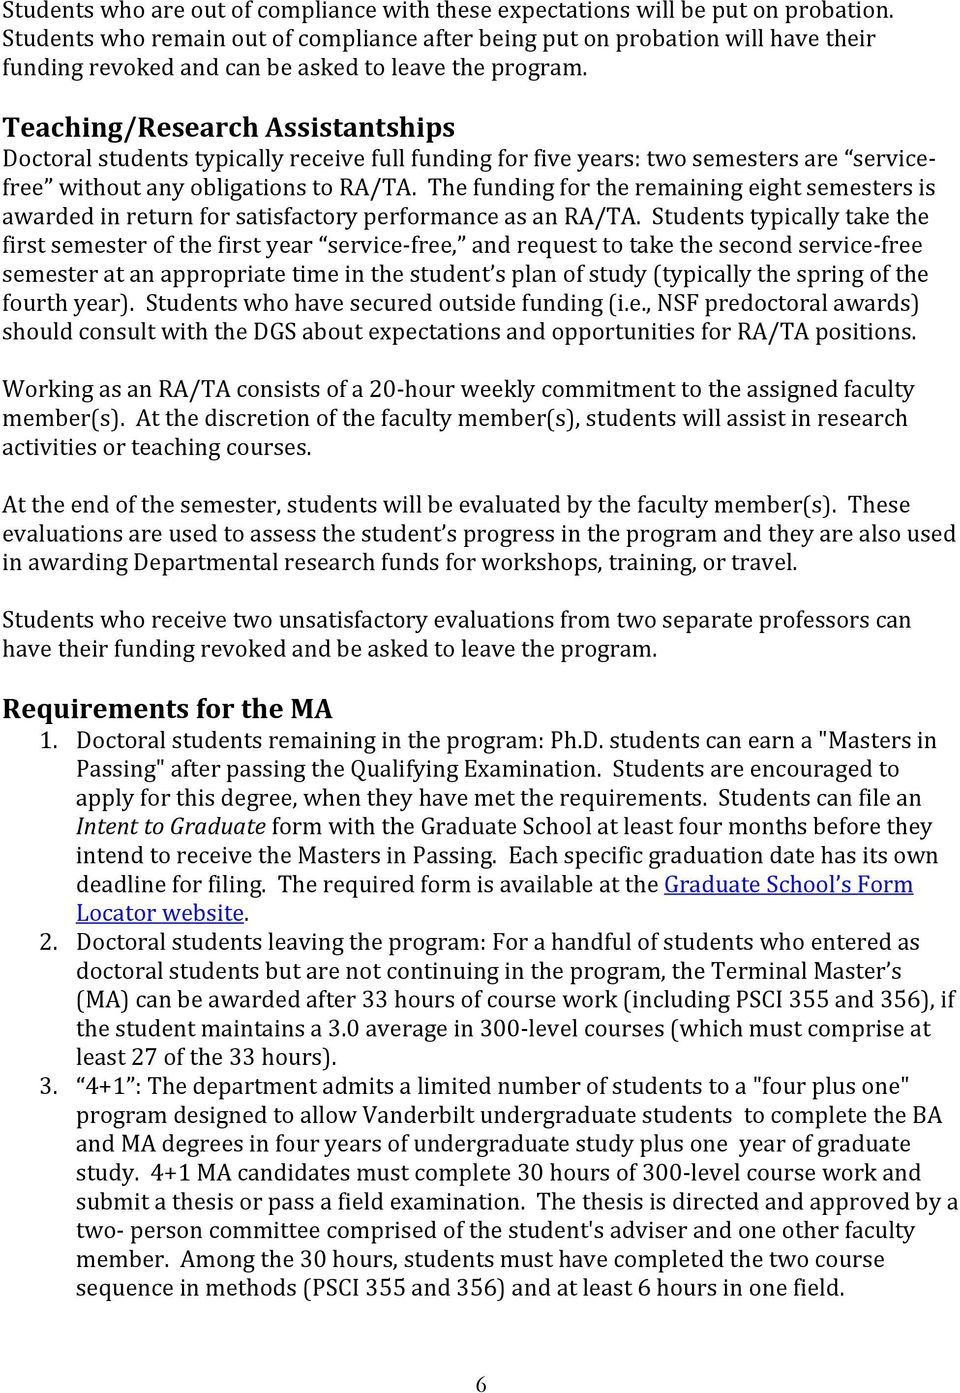 Teaching/Research Assistantships Doctoral students typically receive full funding for five years: two semesters are servicefree without any obligations to RA/TA.